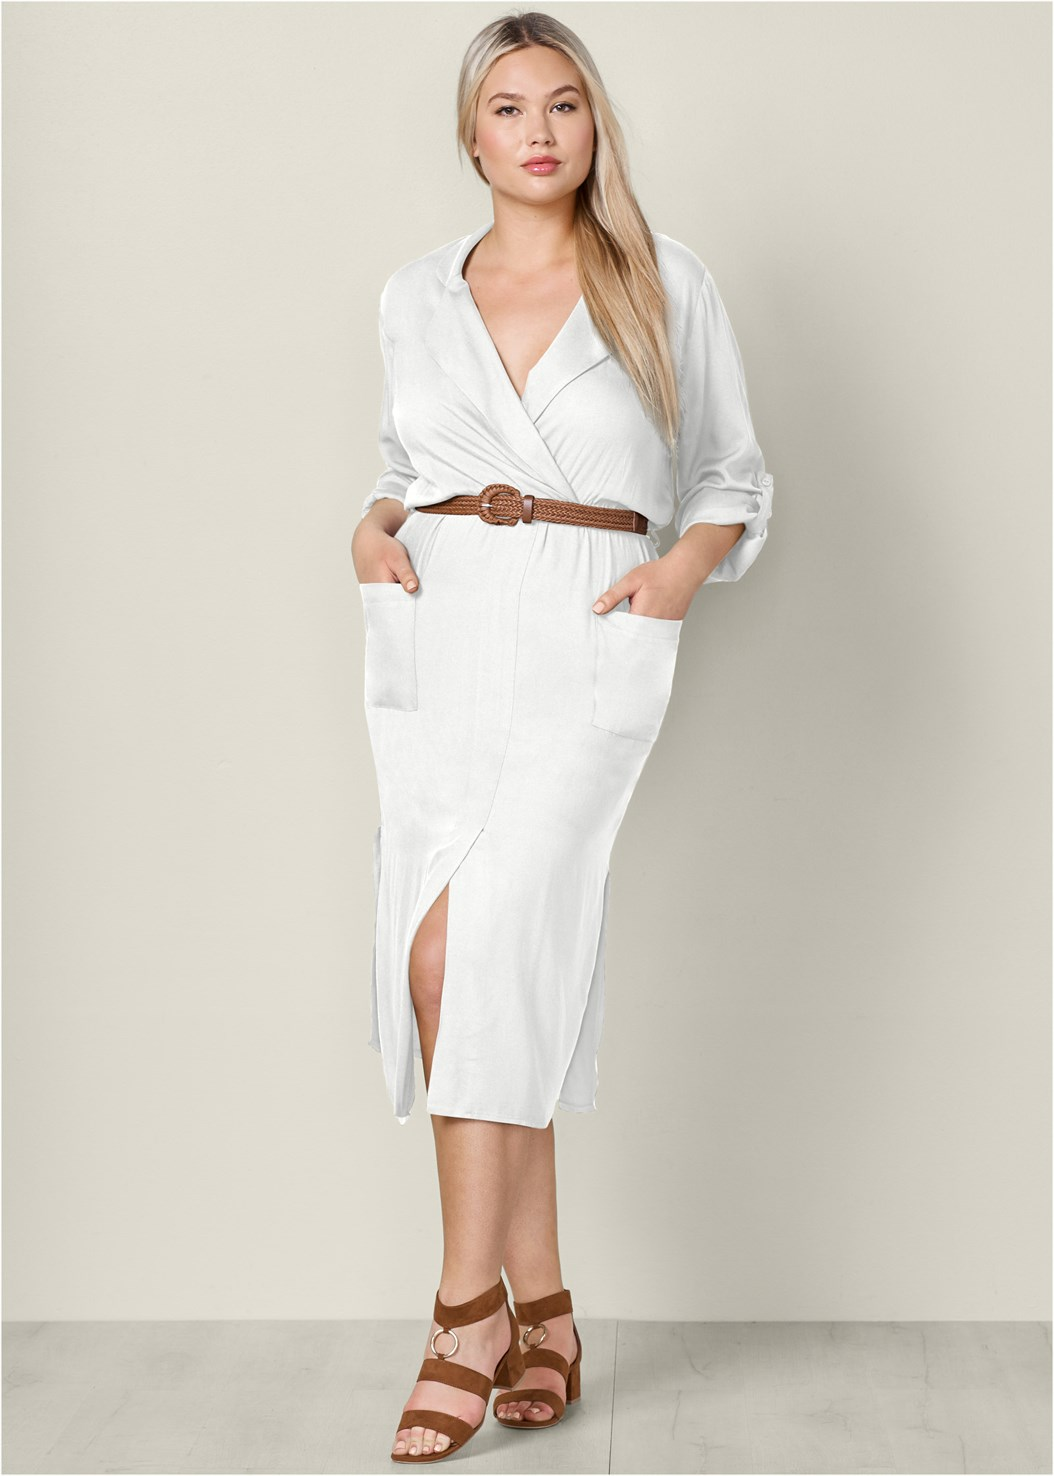 Venus Shirtdress